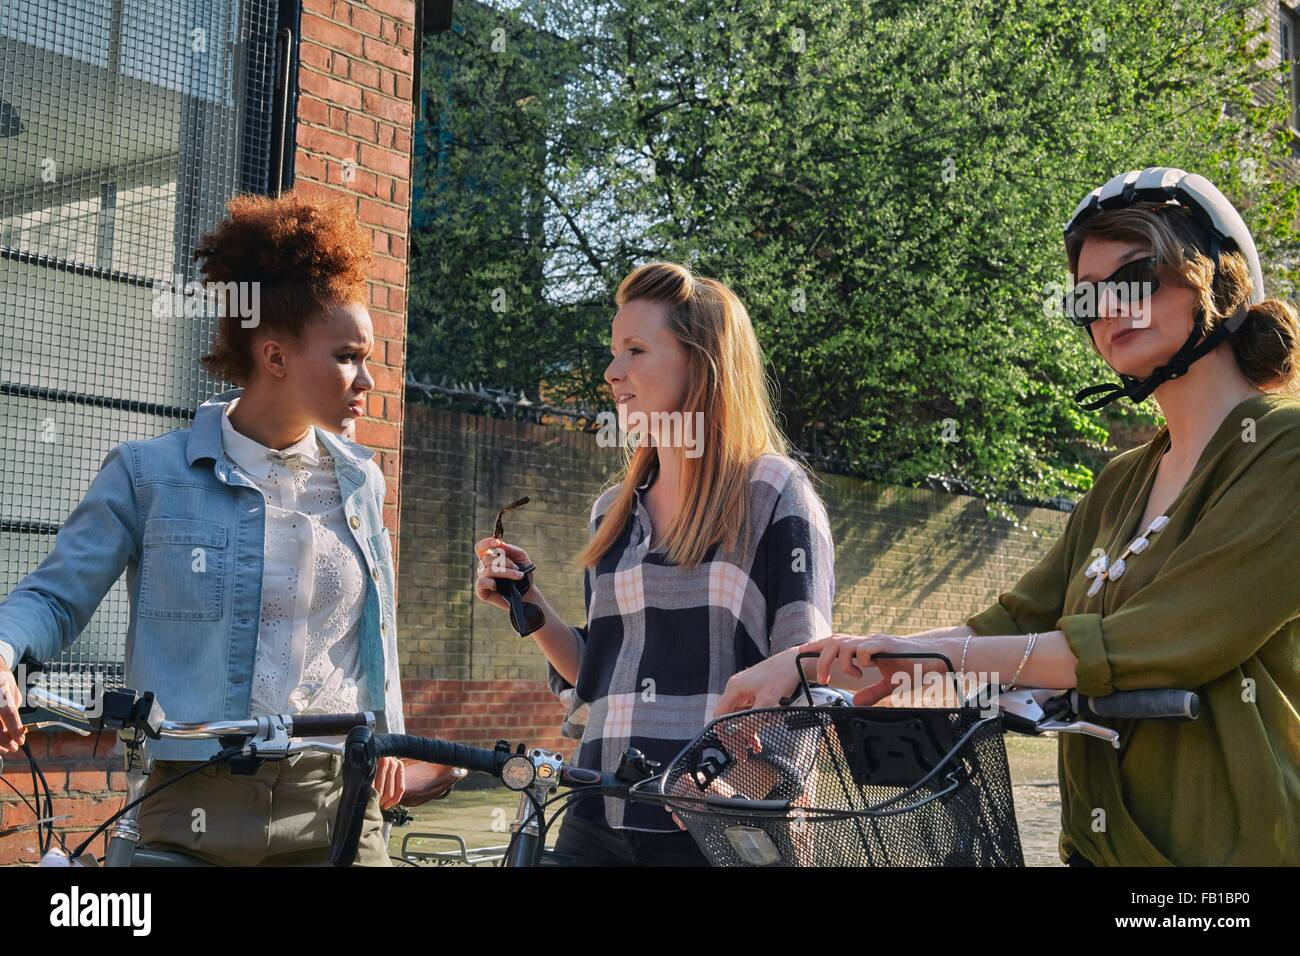 Women in urban area, waist up, standing holding bicycles chatting - Stock Image